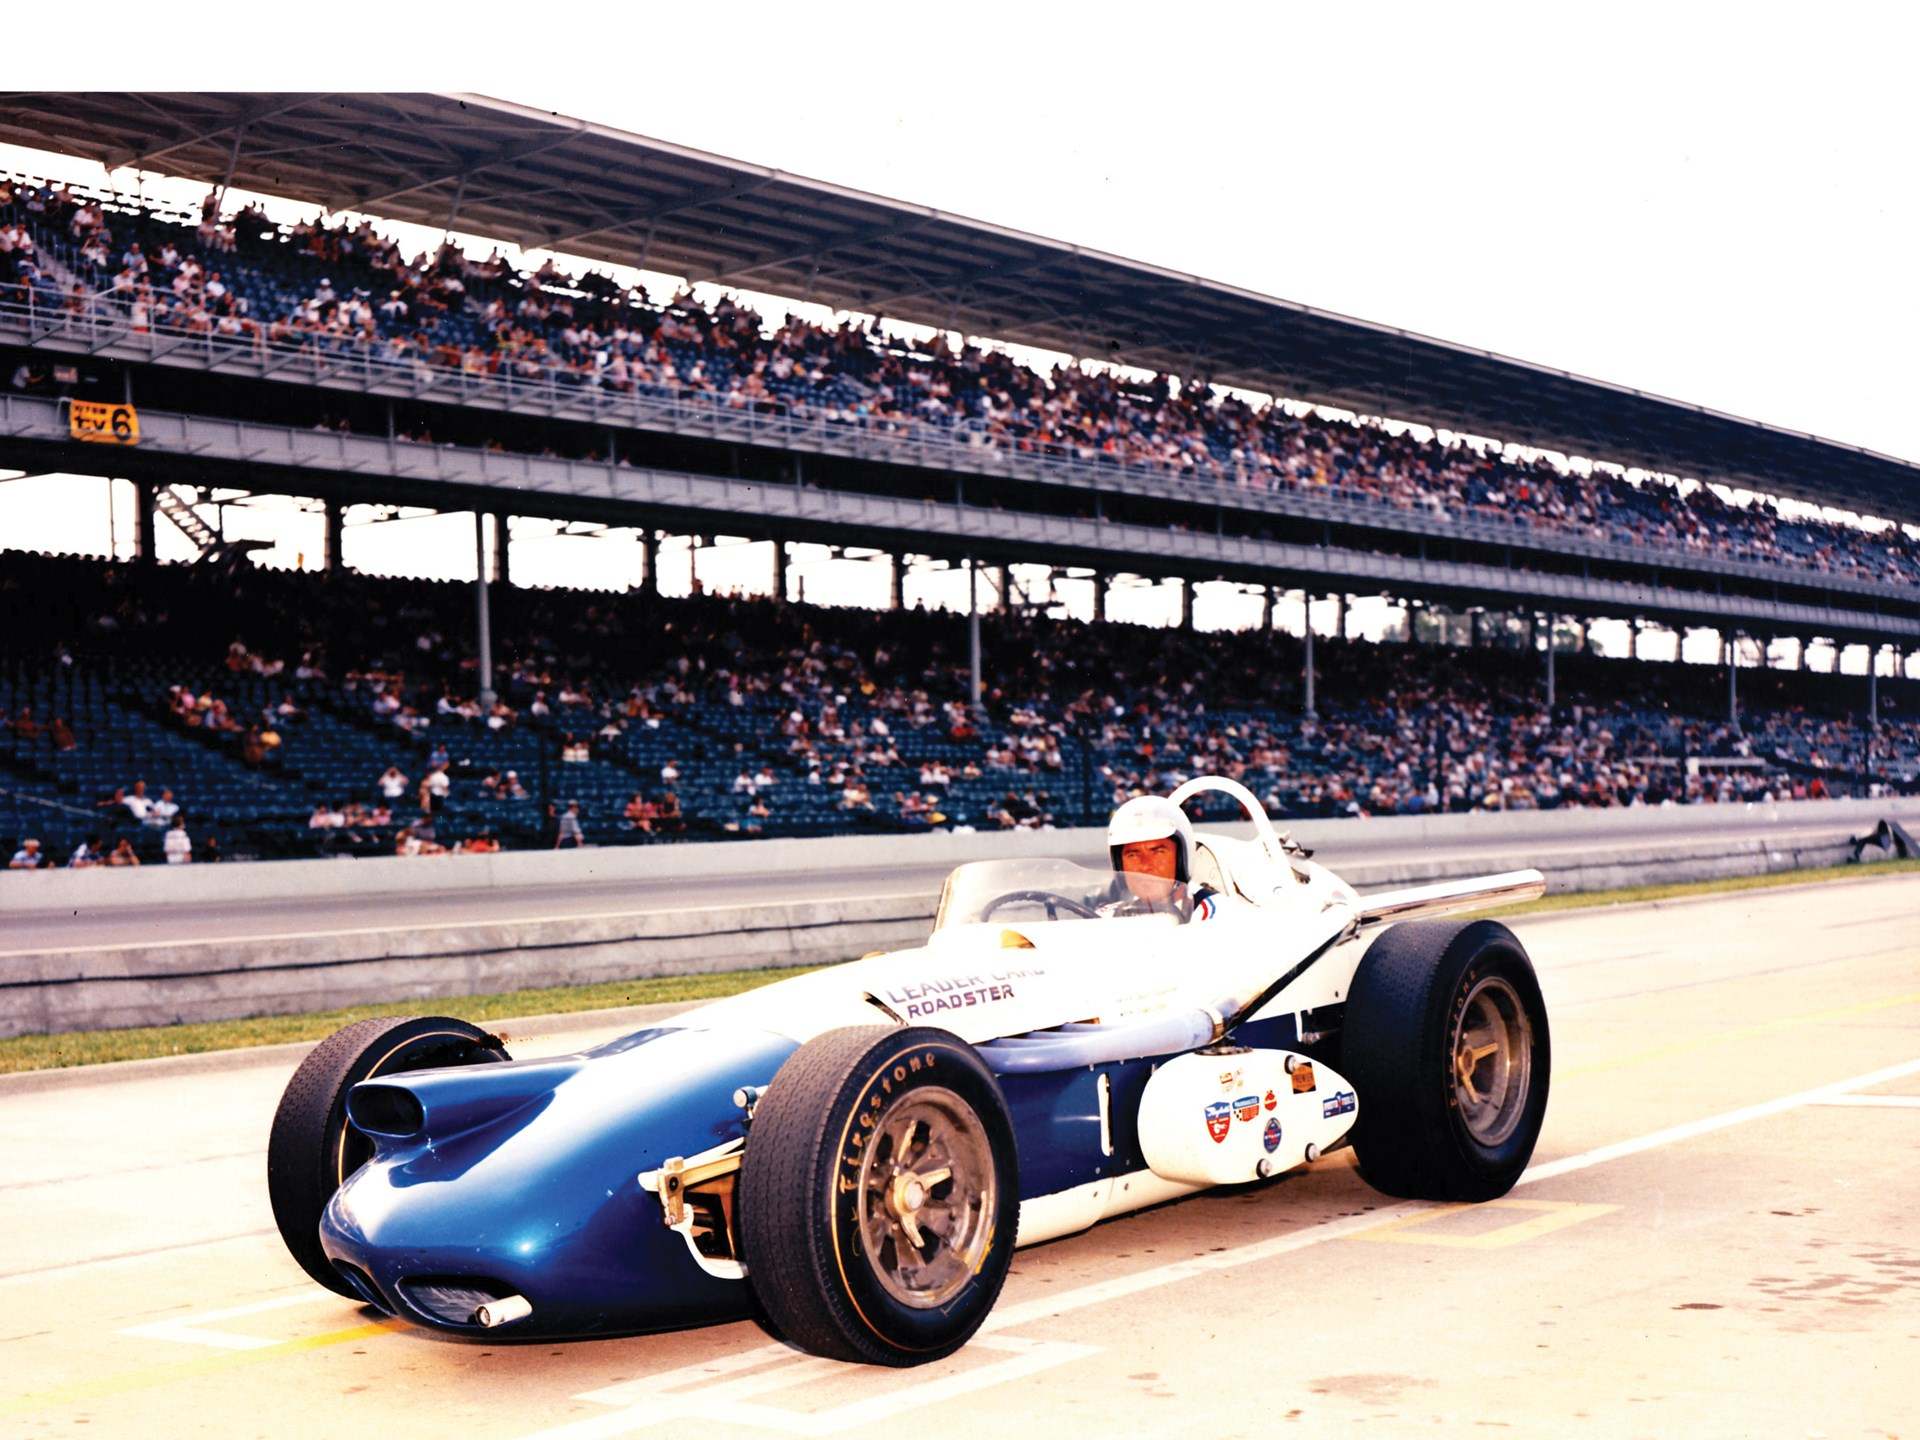 """1963 Watson Indianapolis """"Diet-Rite Cola Special"""""""